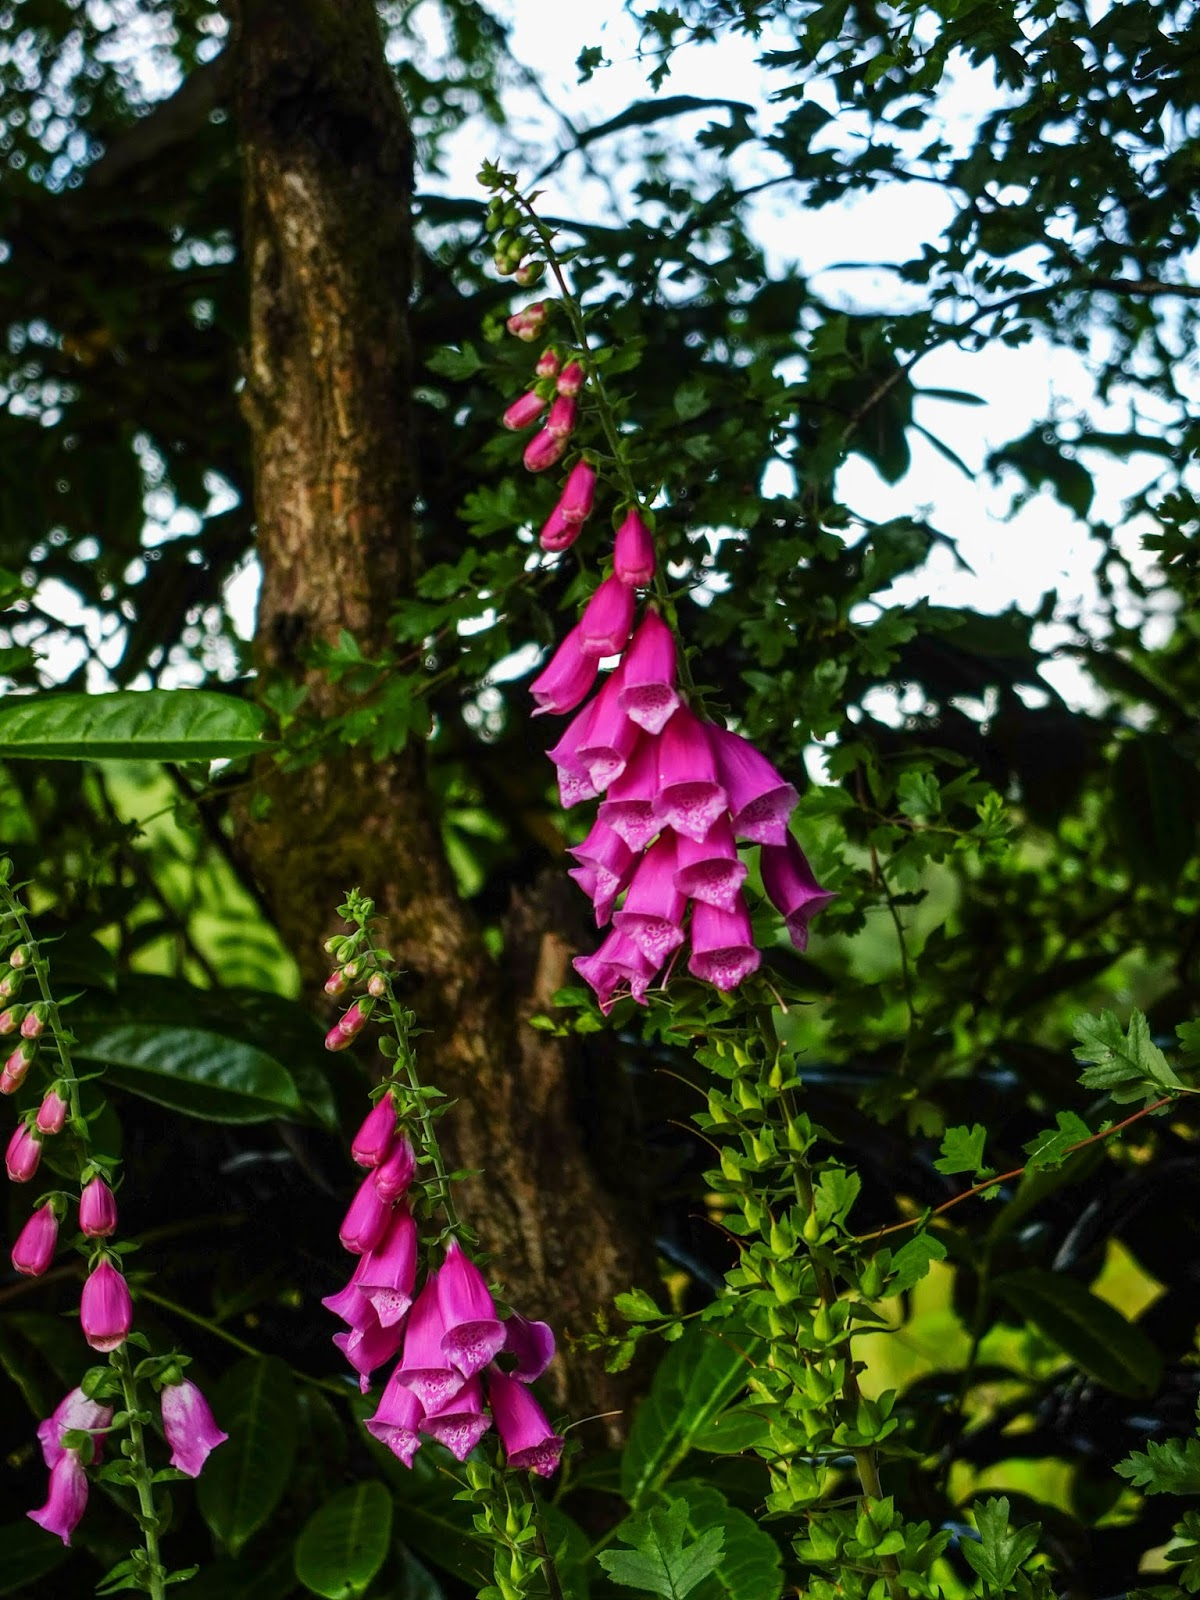 A pair of purple foxgloves in the ditch.